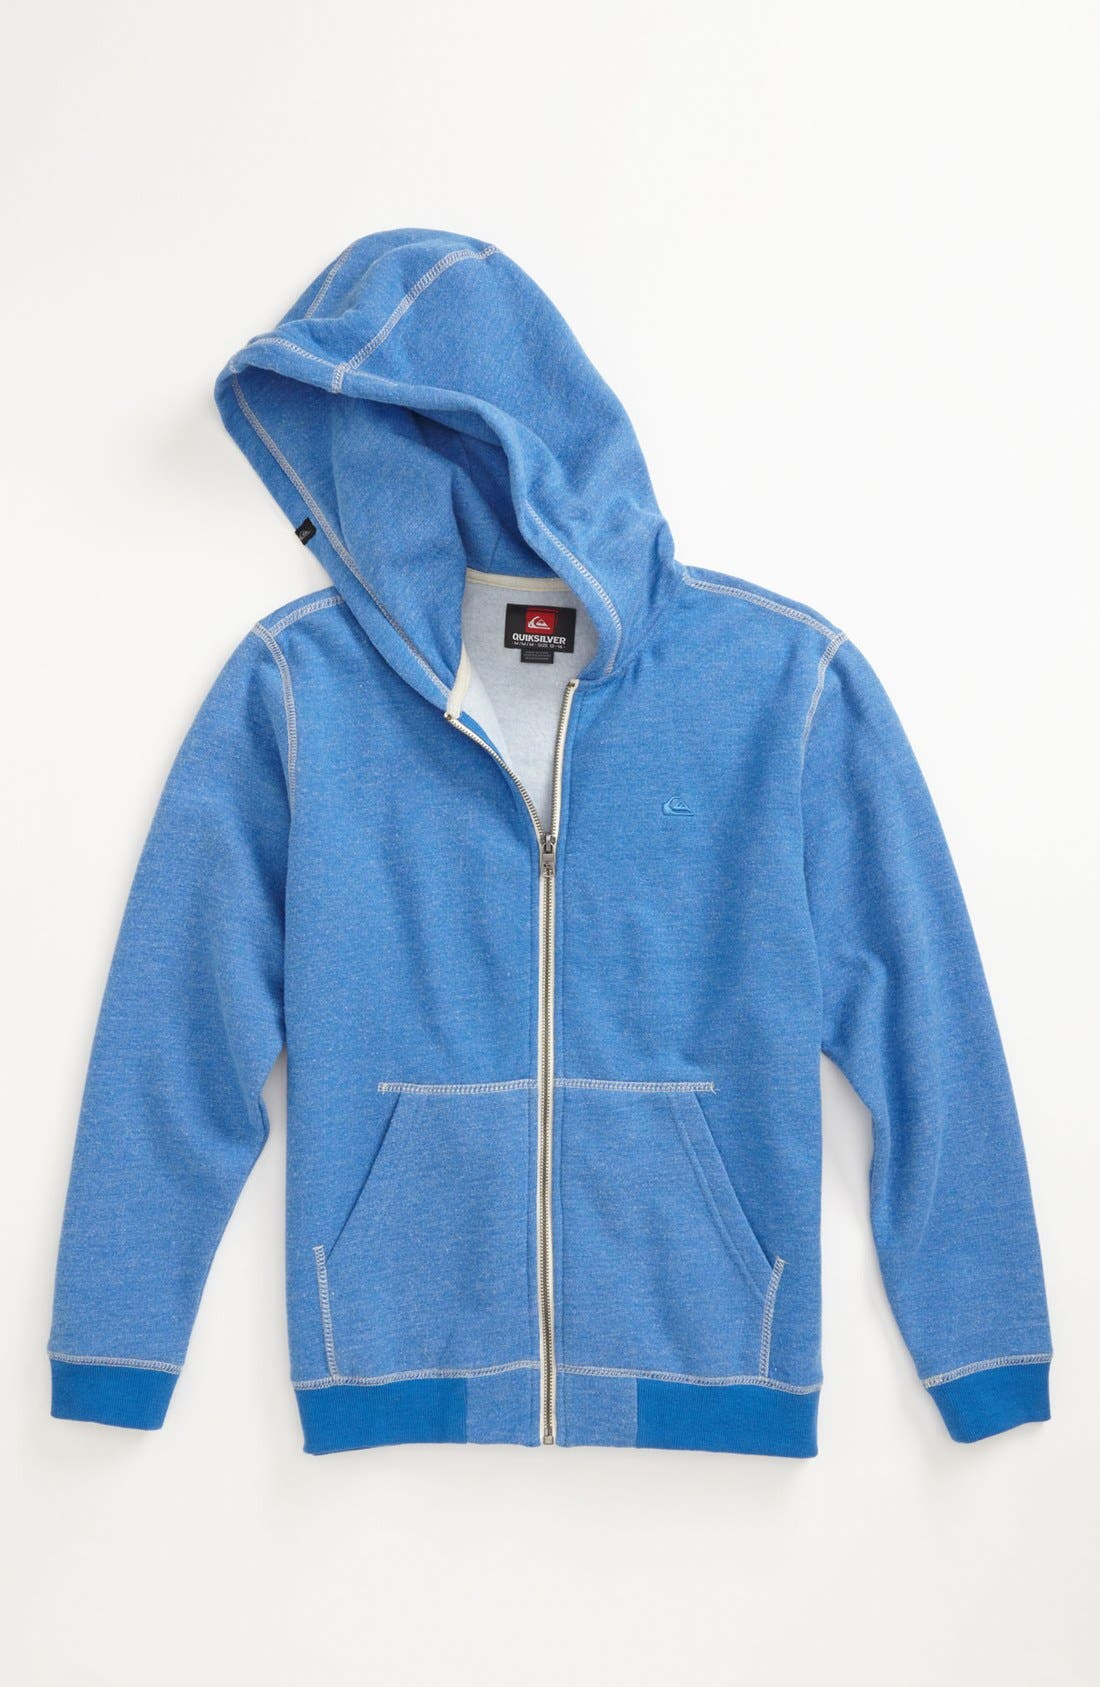 Alternate Image 1 Selected - Quiksilver 'Hartley' Hoodie (Little Boys) (Online Only)